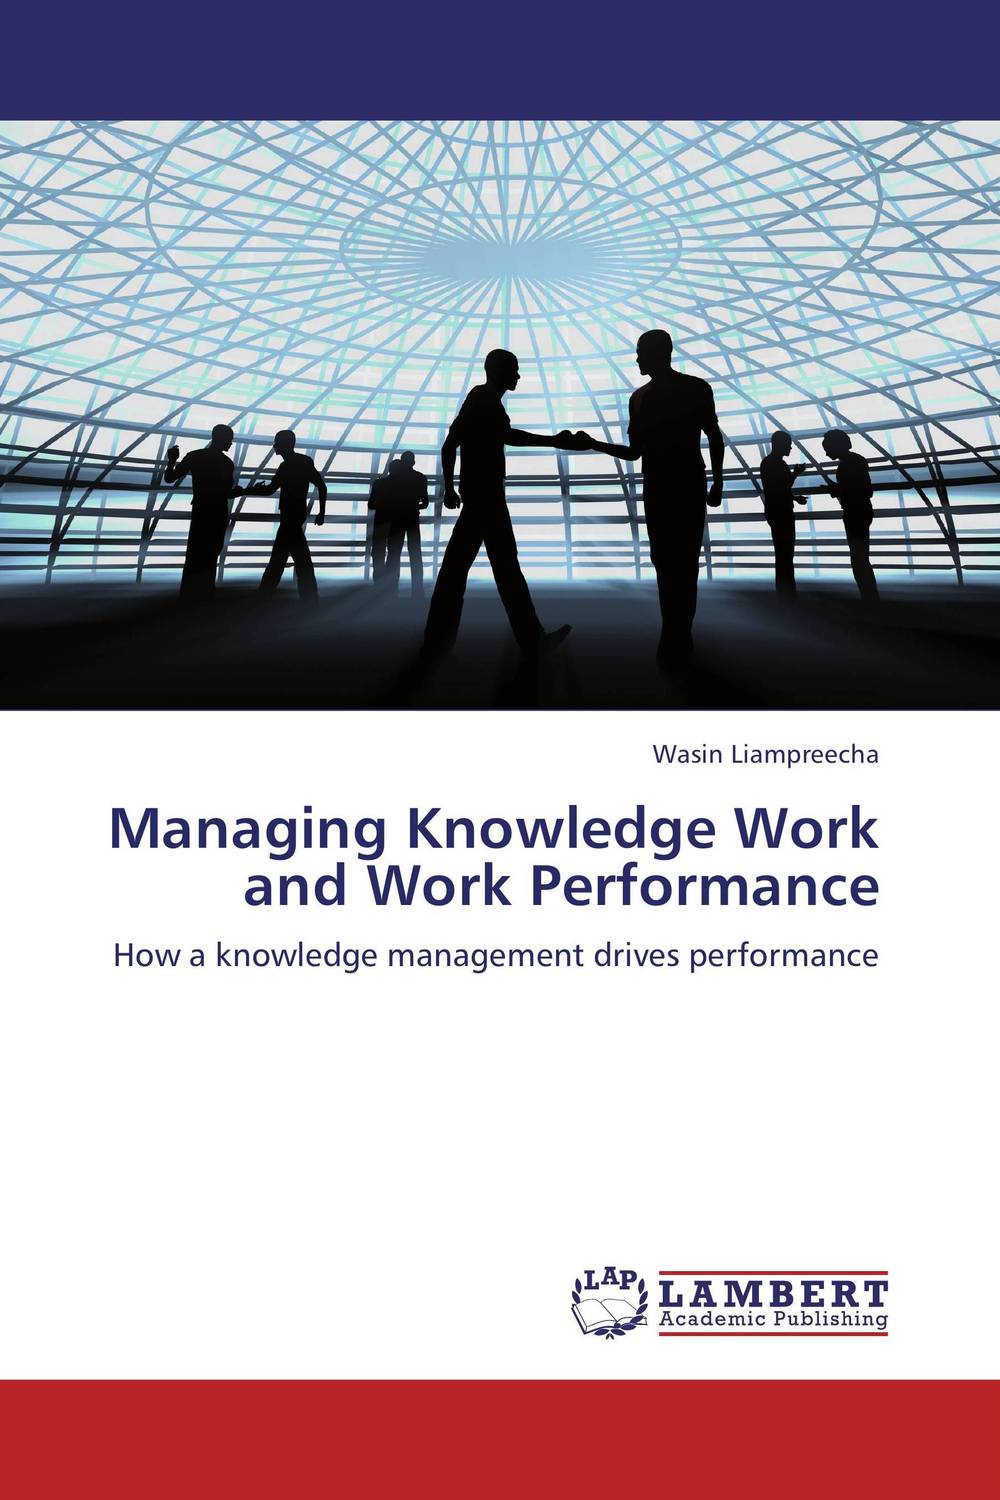 Managing Knowledge Work and Work Performance john storey managing performance and change the knowledge age